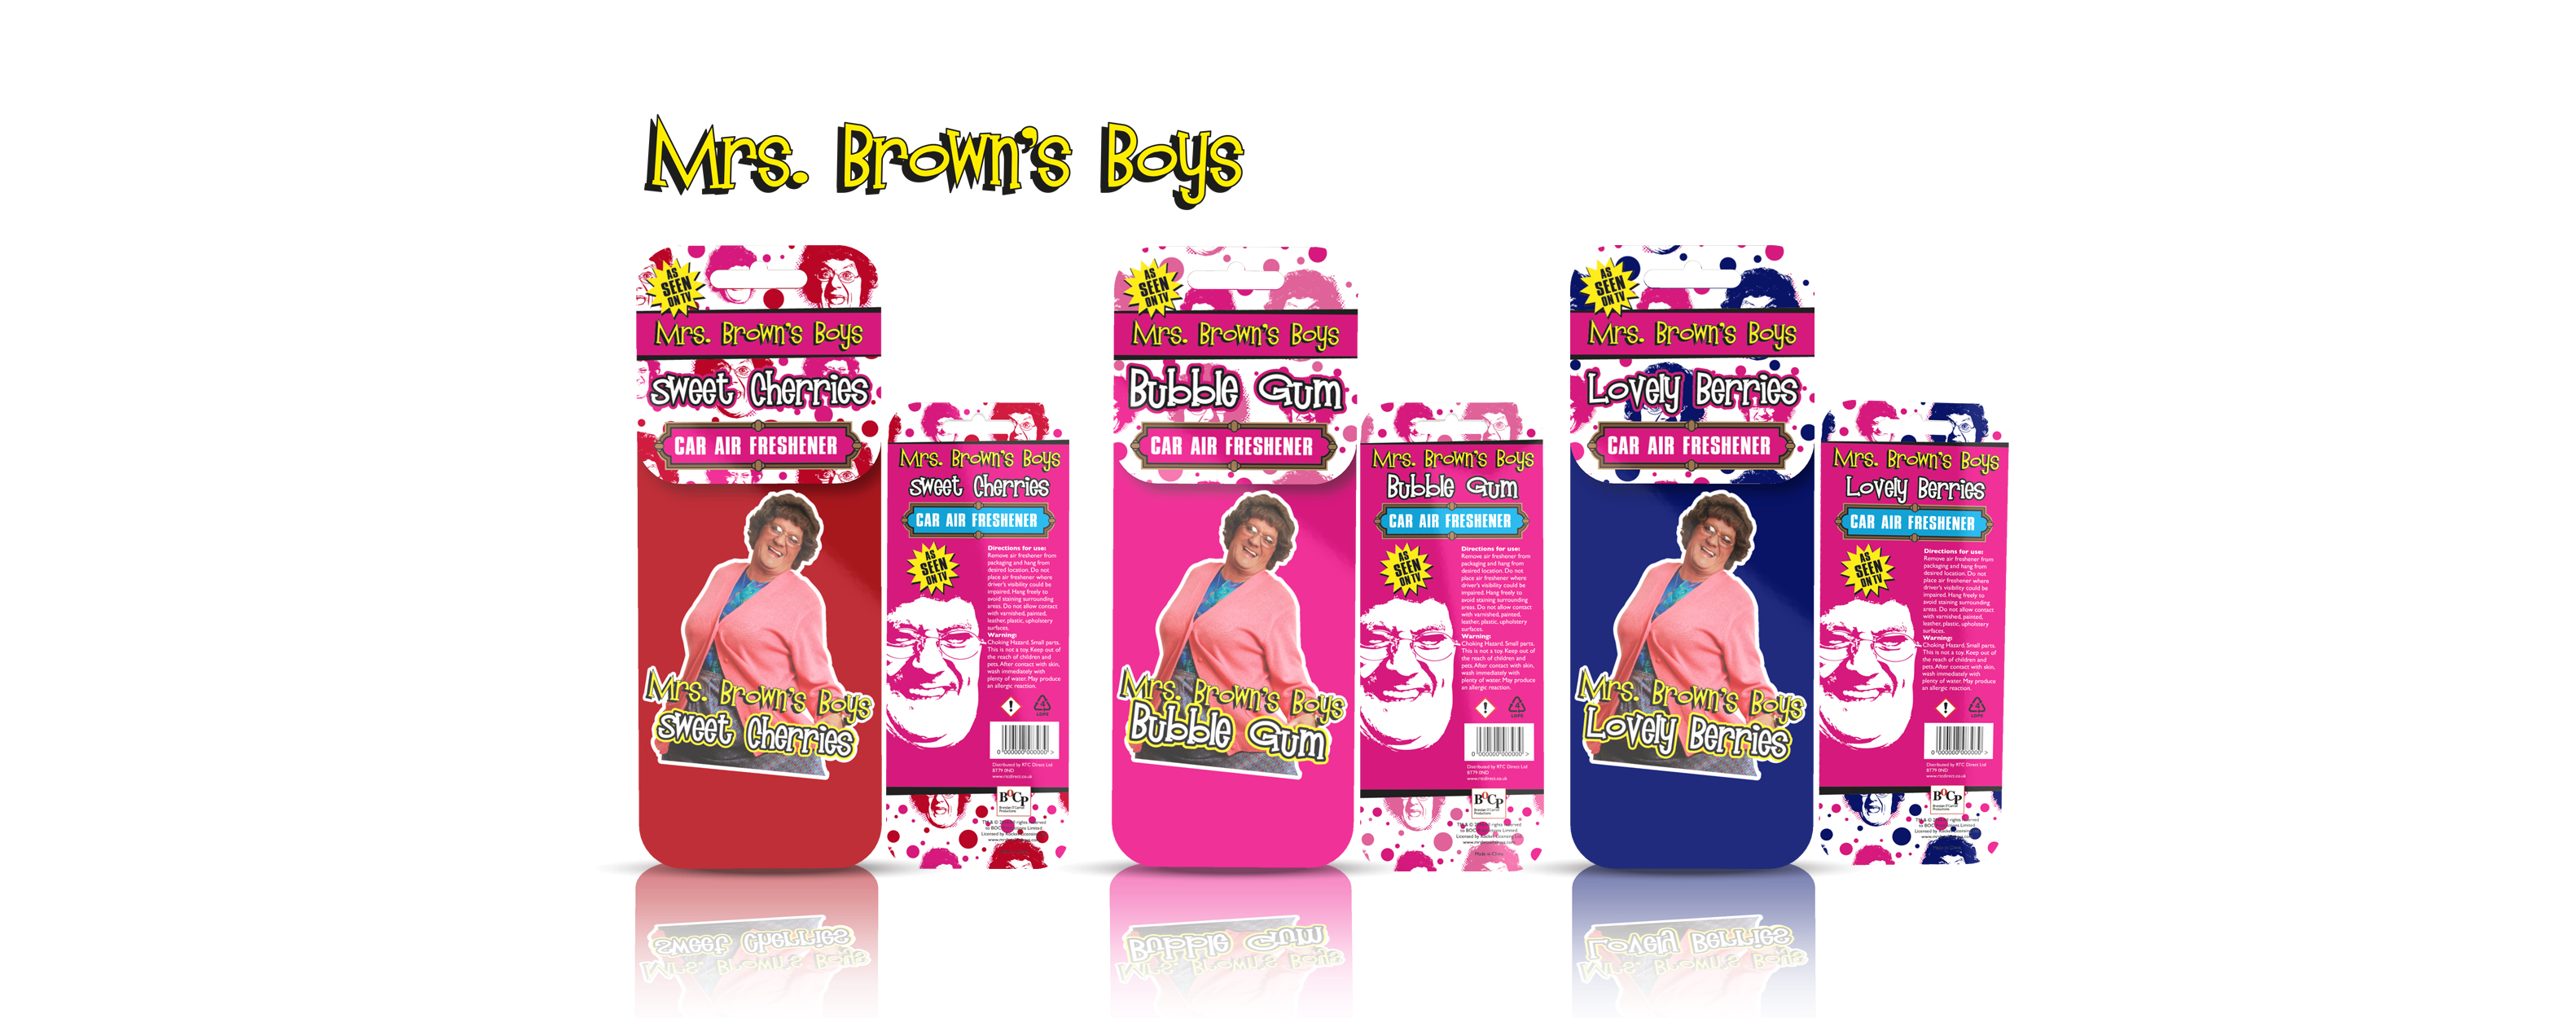 Mrs Browns Boys Air Freshener Design Visuals printed graphic